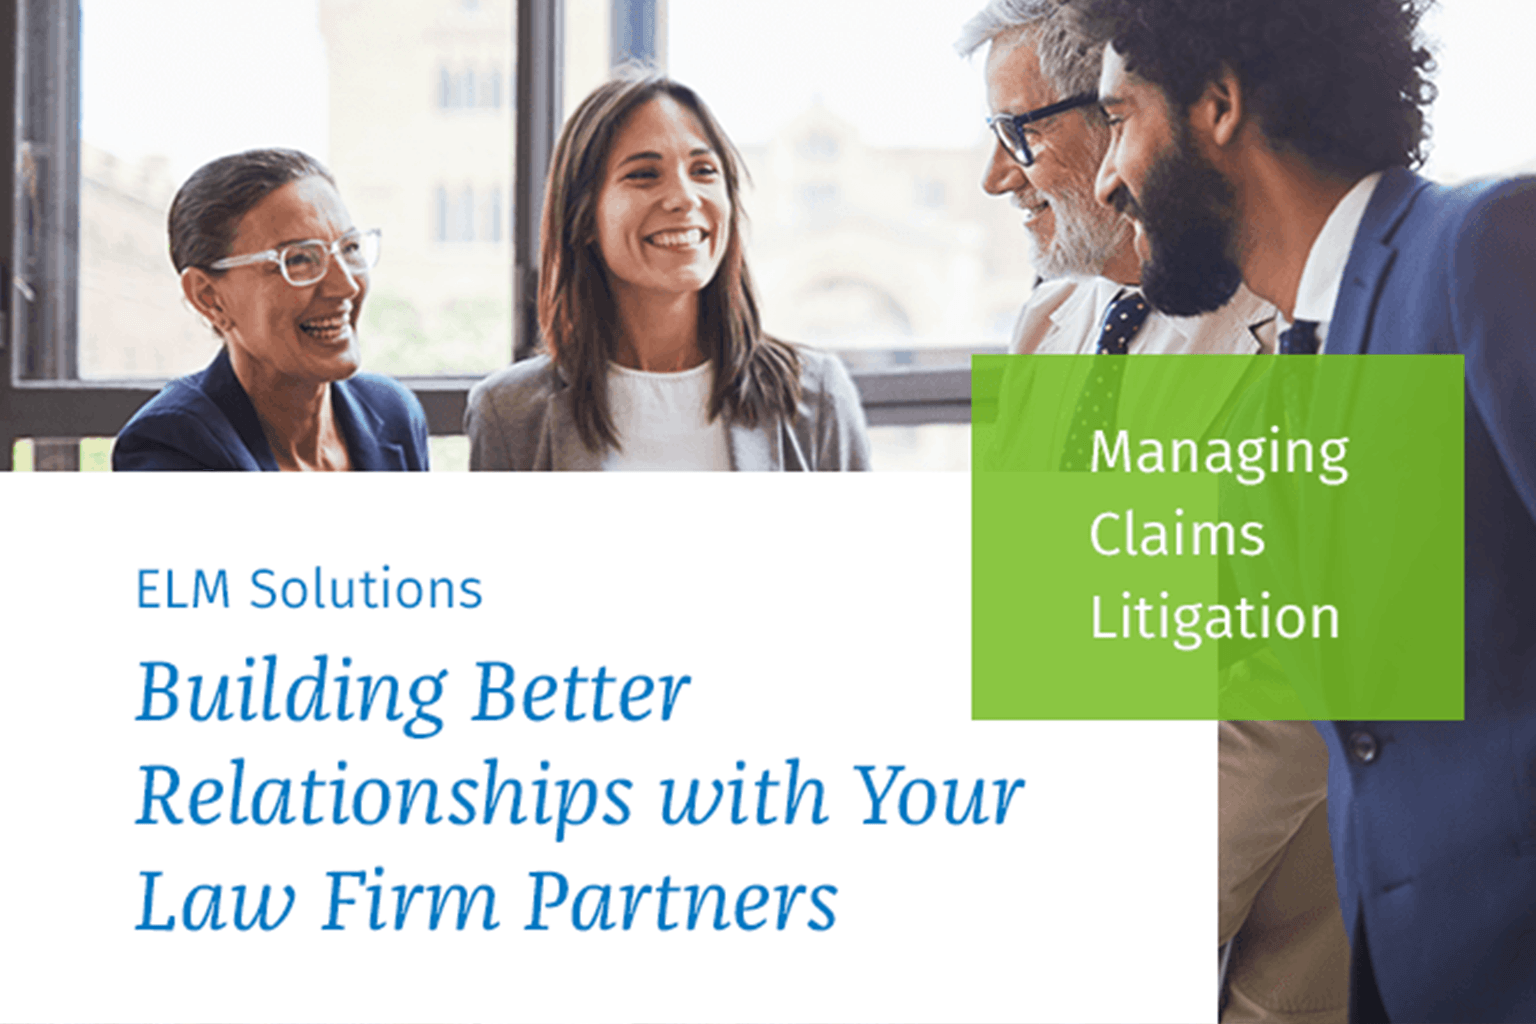 Whitepaper: Building Better Relationships with Your Law Firm Partners